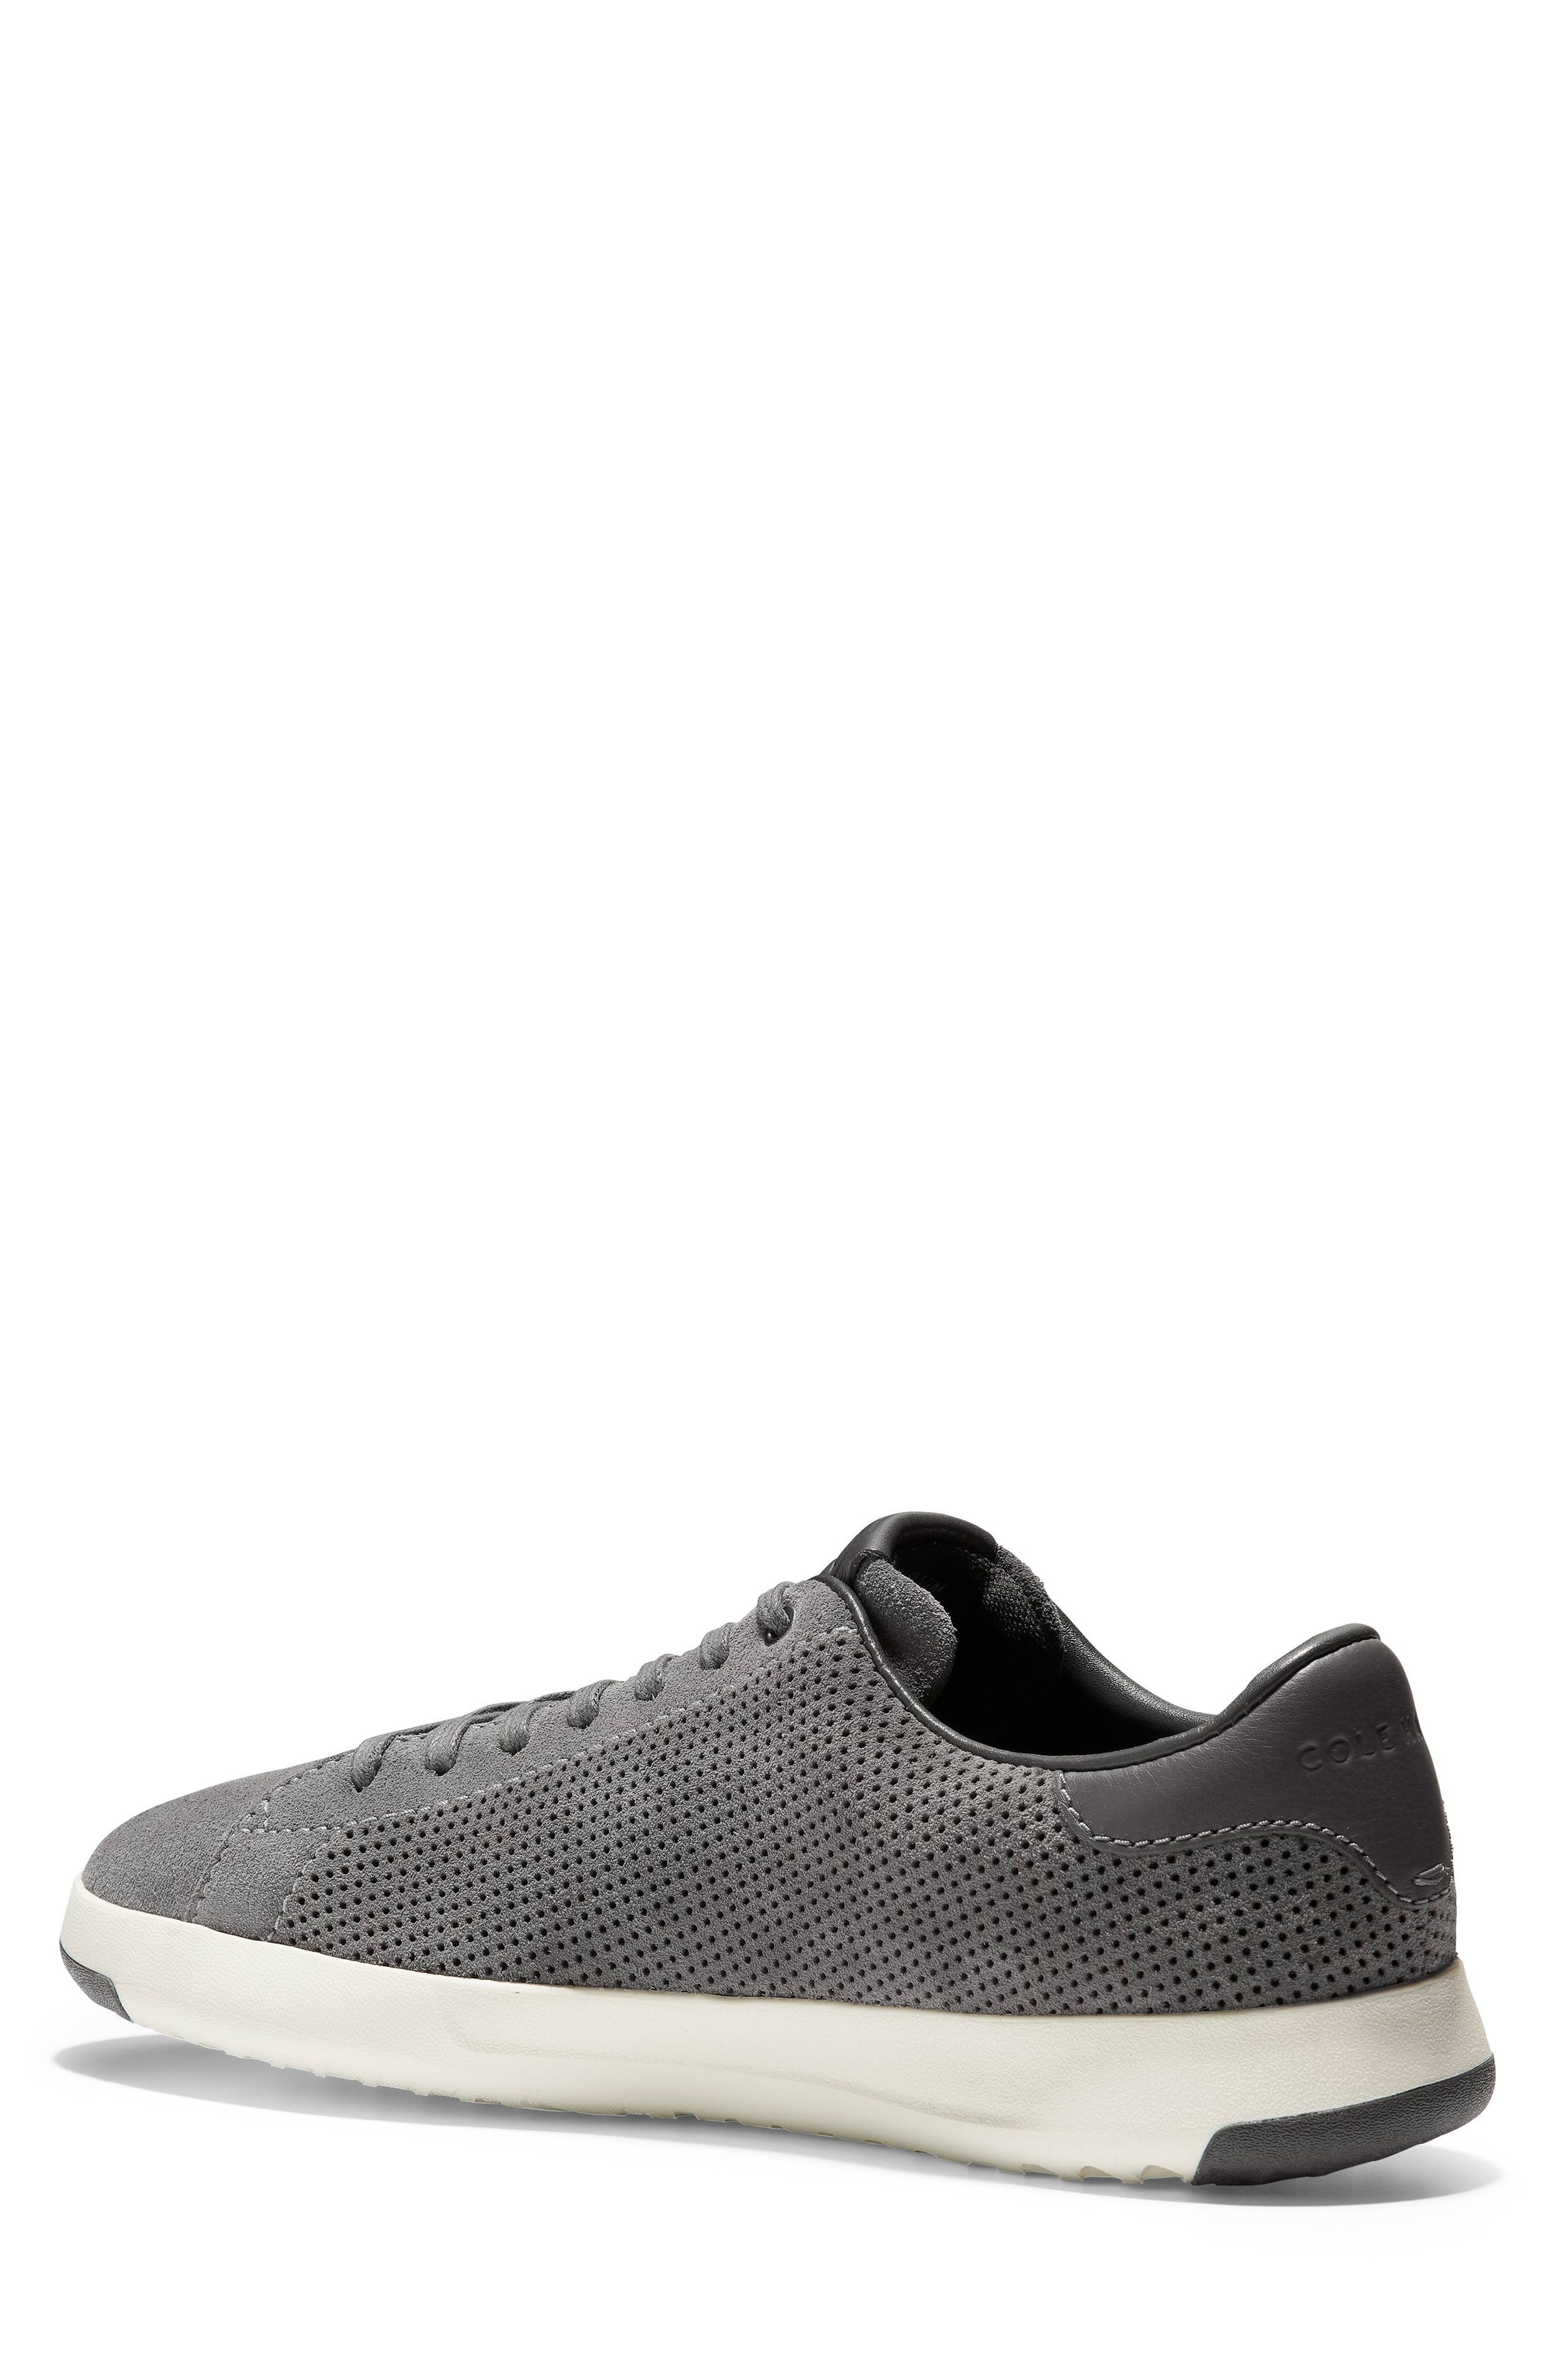 COLE HAAN, GrandPro Tennis Sneaker, Alternate thumbnail 2, color, GREY SUEDE